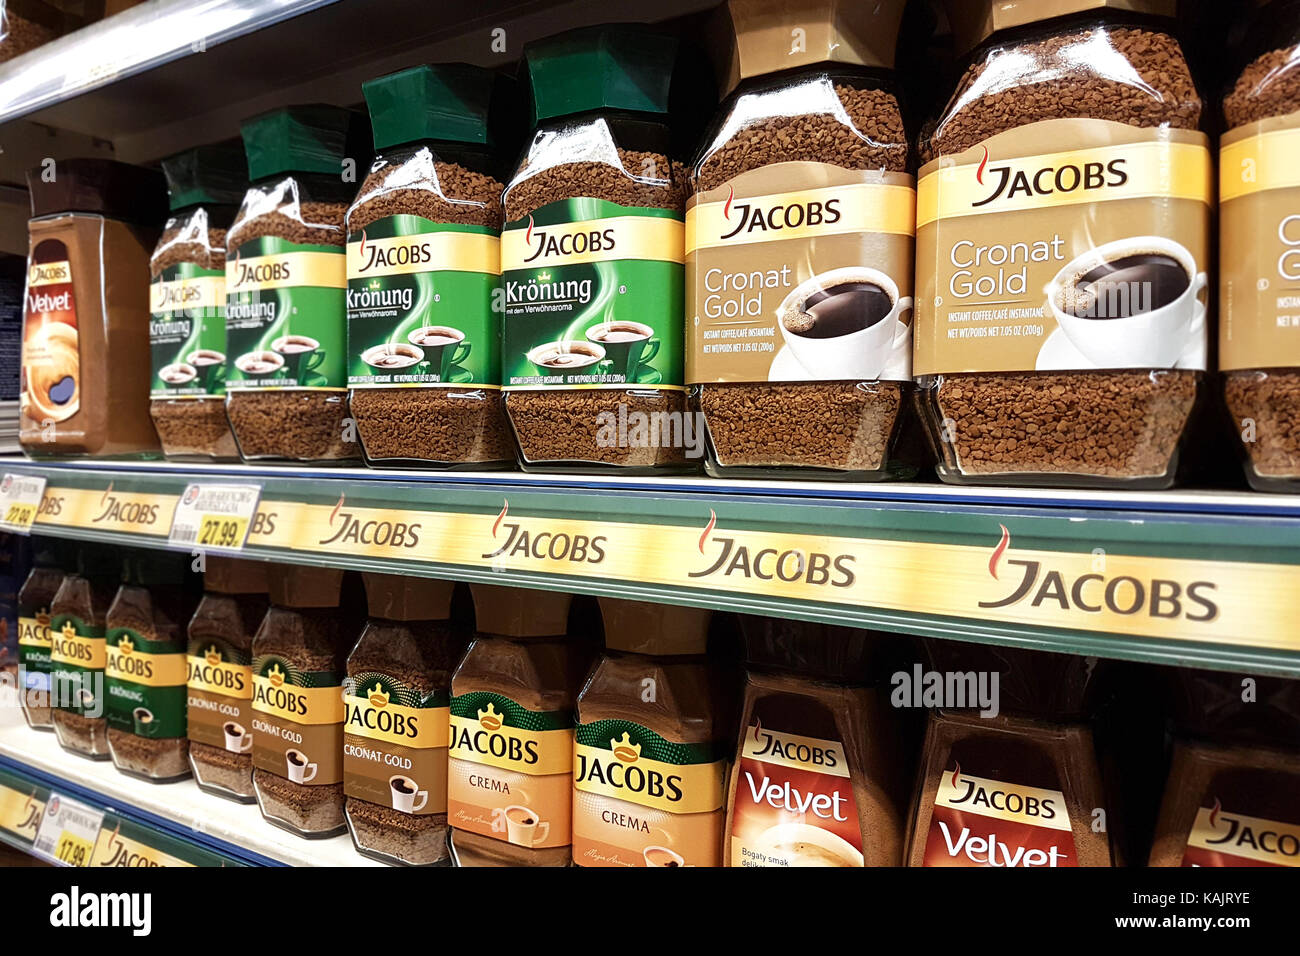 Nowy Sacz, Poland - September 17, 2017:  Various types of Jacobs coffee for sale in E.leclerc Supermarket. Jacobs - Stock Image